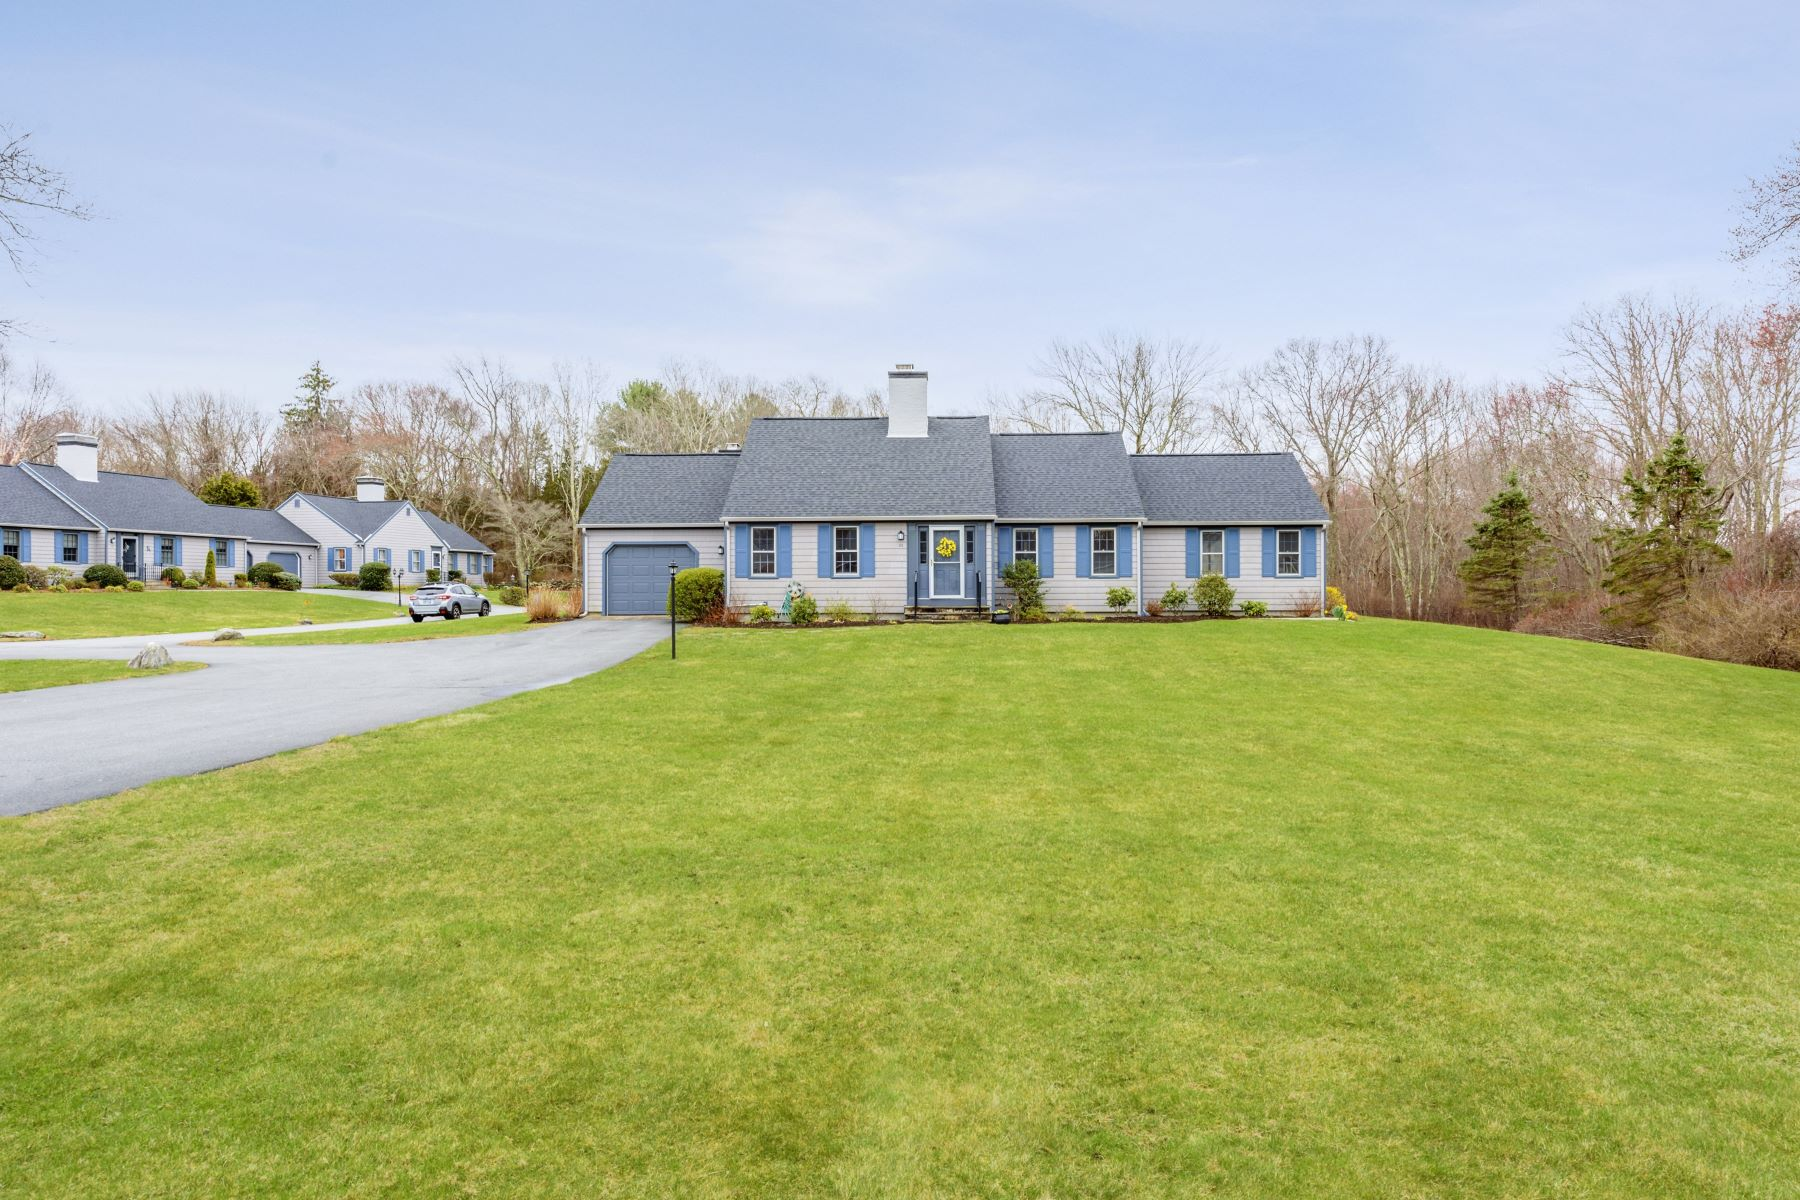 Condominiums for Sale at 22 Hamilton Gate Court, North Kingstown, RI 22 Hamilton Gate Court North Kingstown, Rhode Island 02852 United States